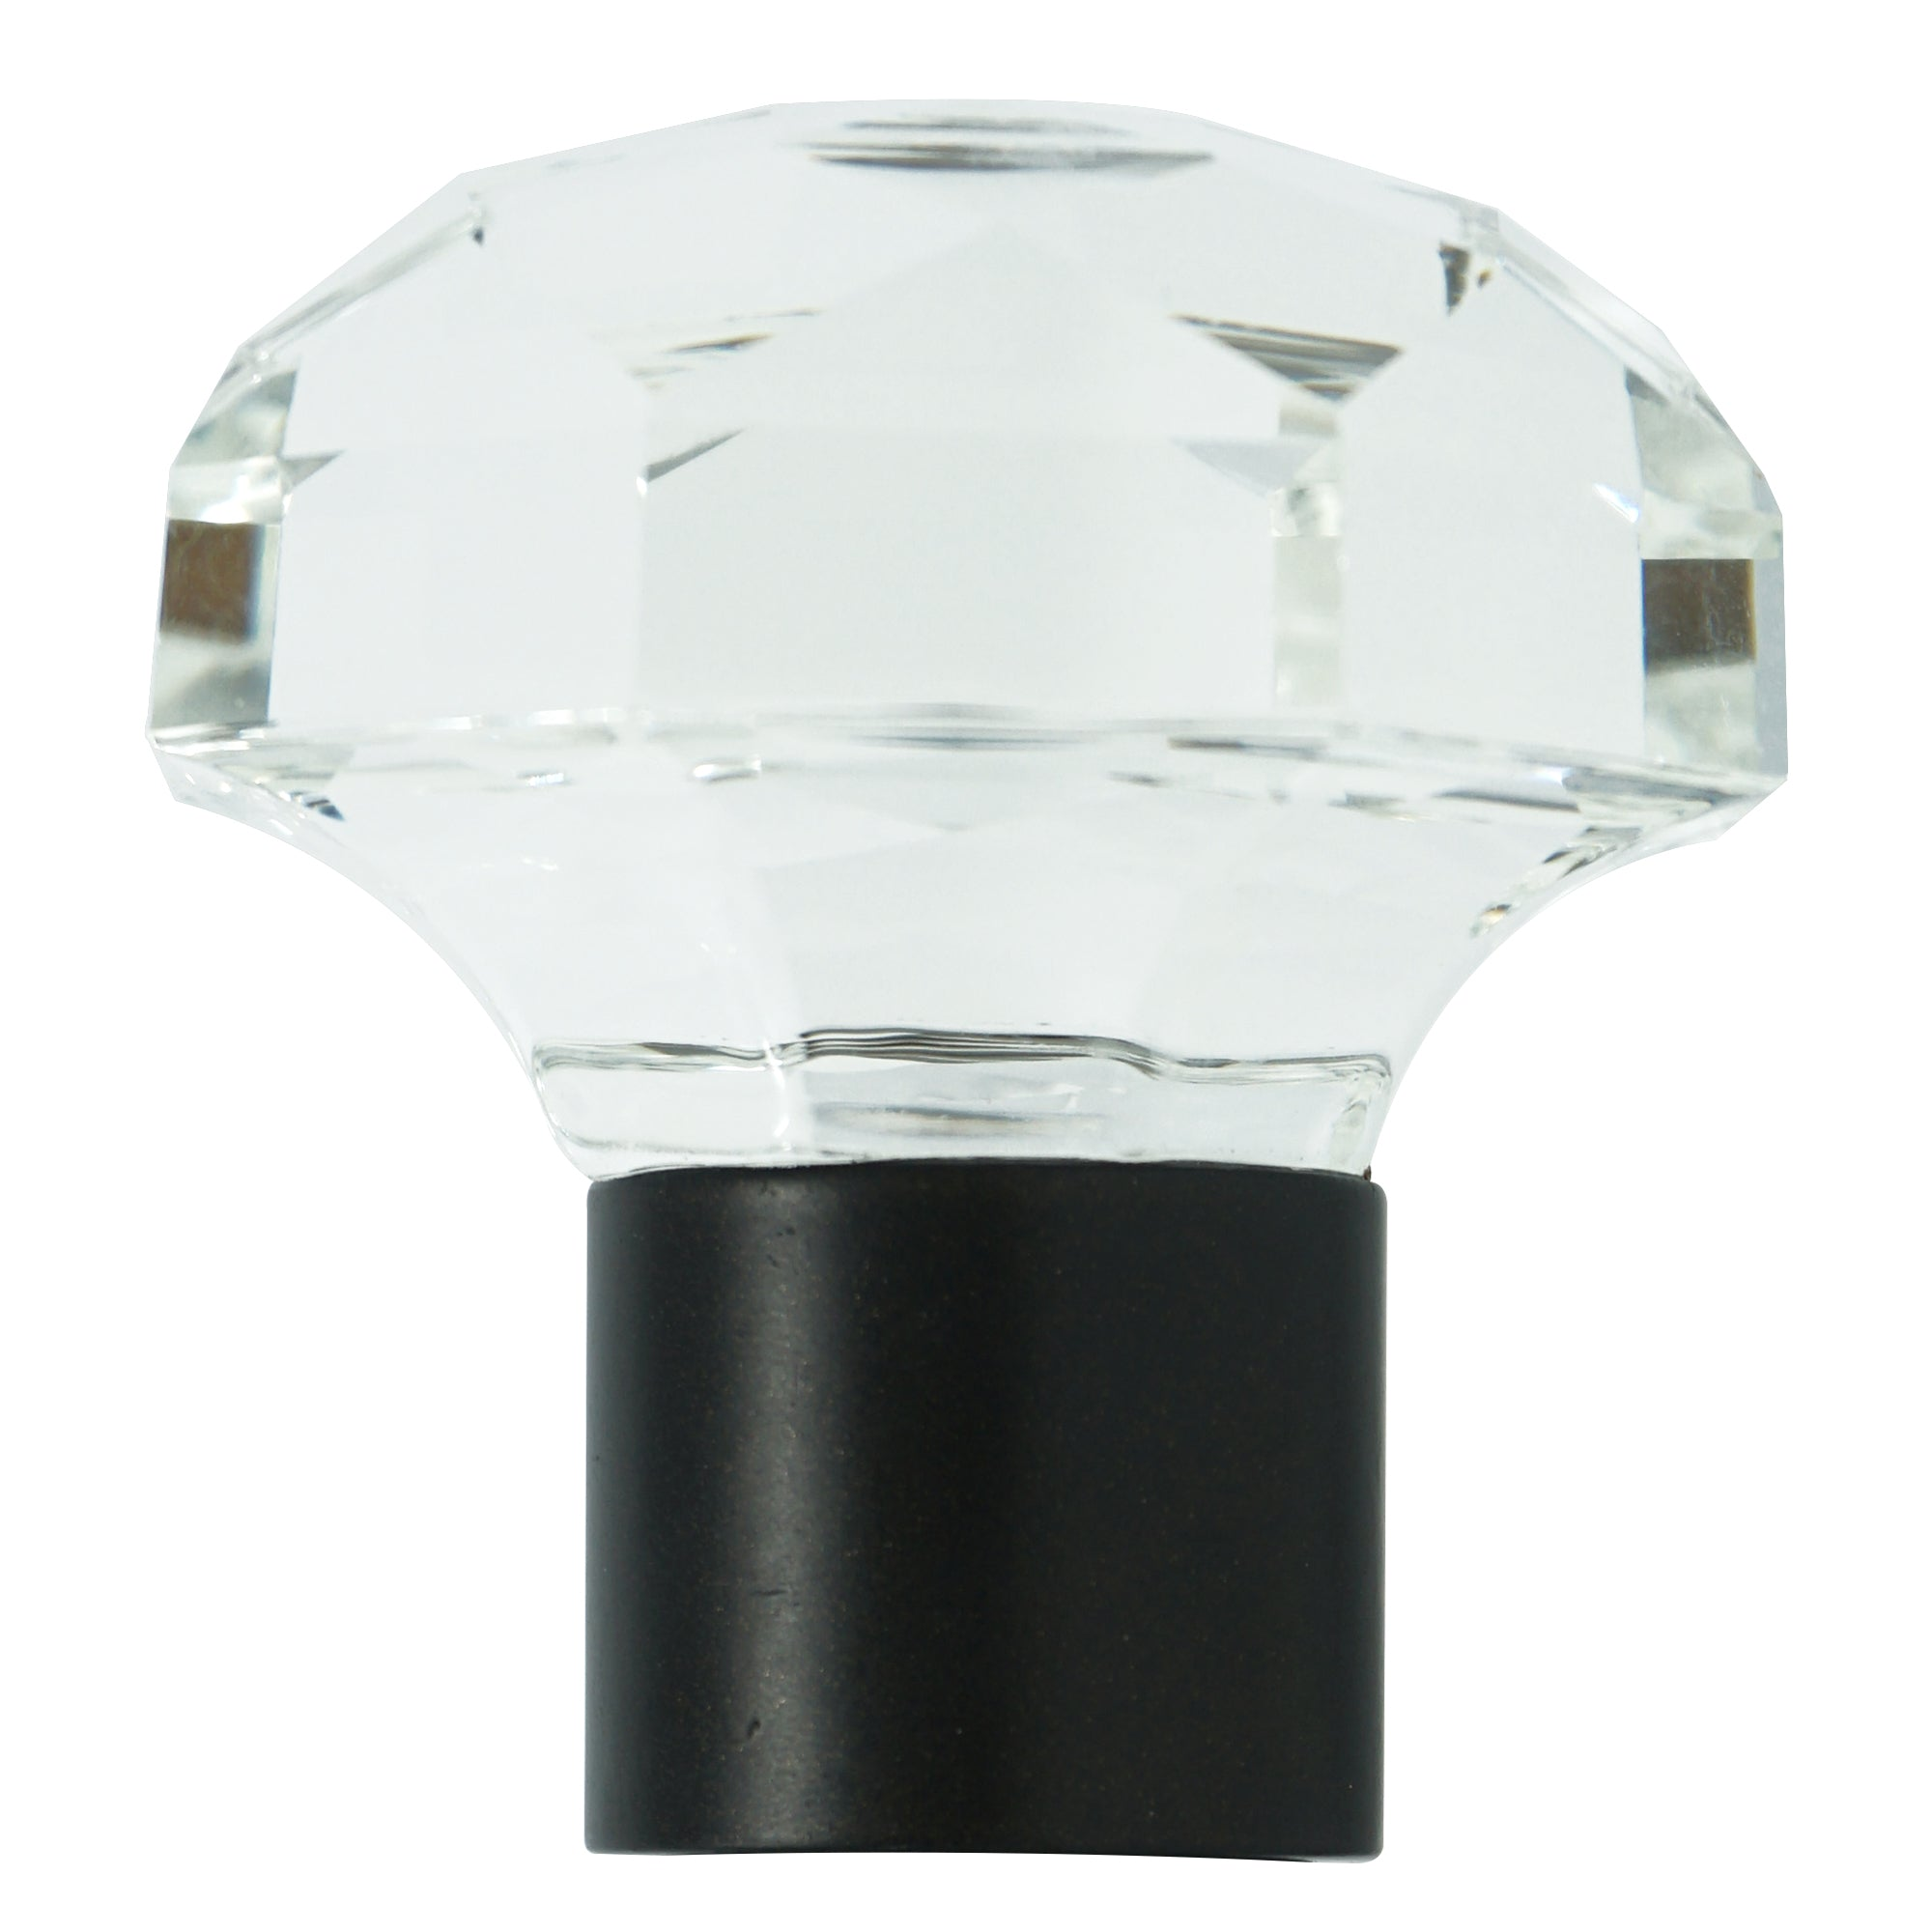 Glass Finial - Oil Rubbed Bronze Finish